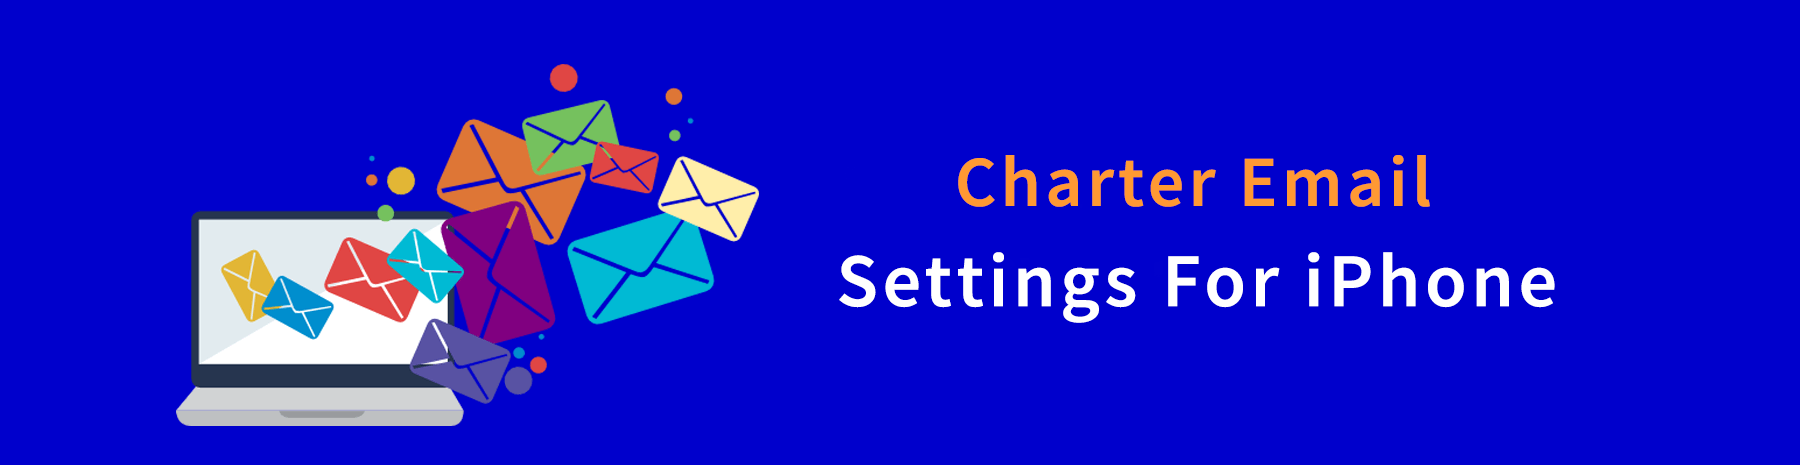 Charter-Email-Settings-iPhone